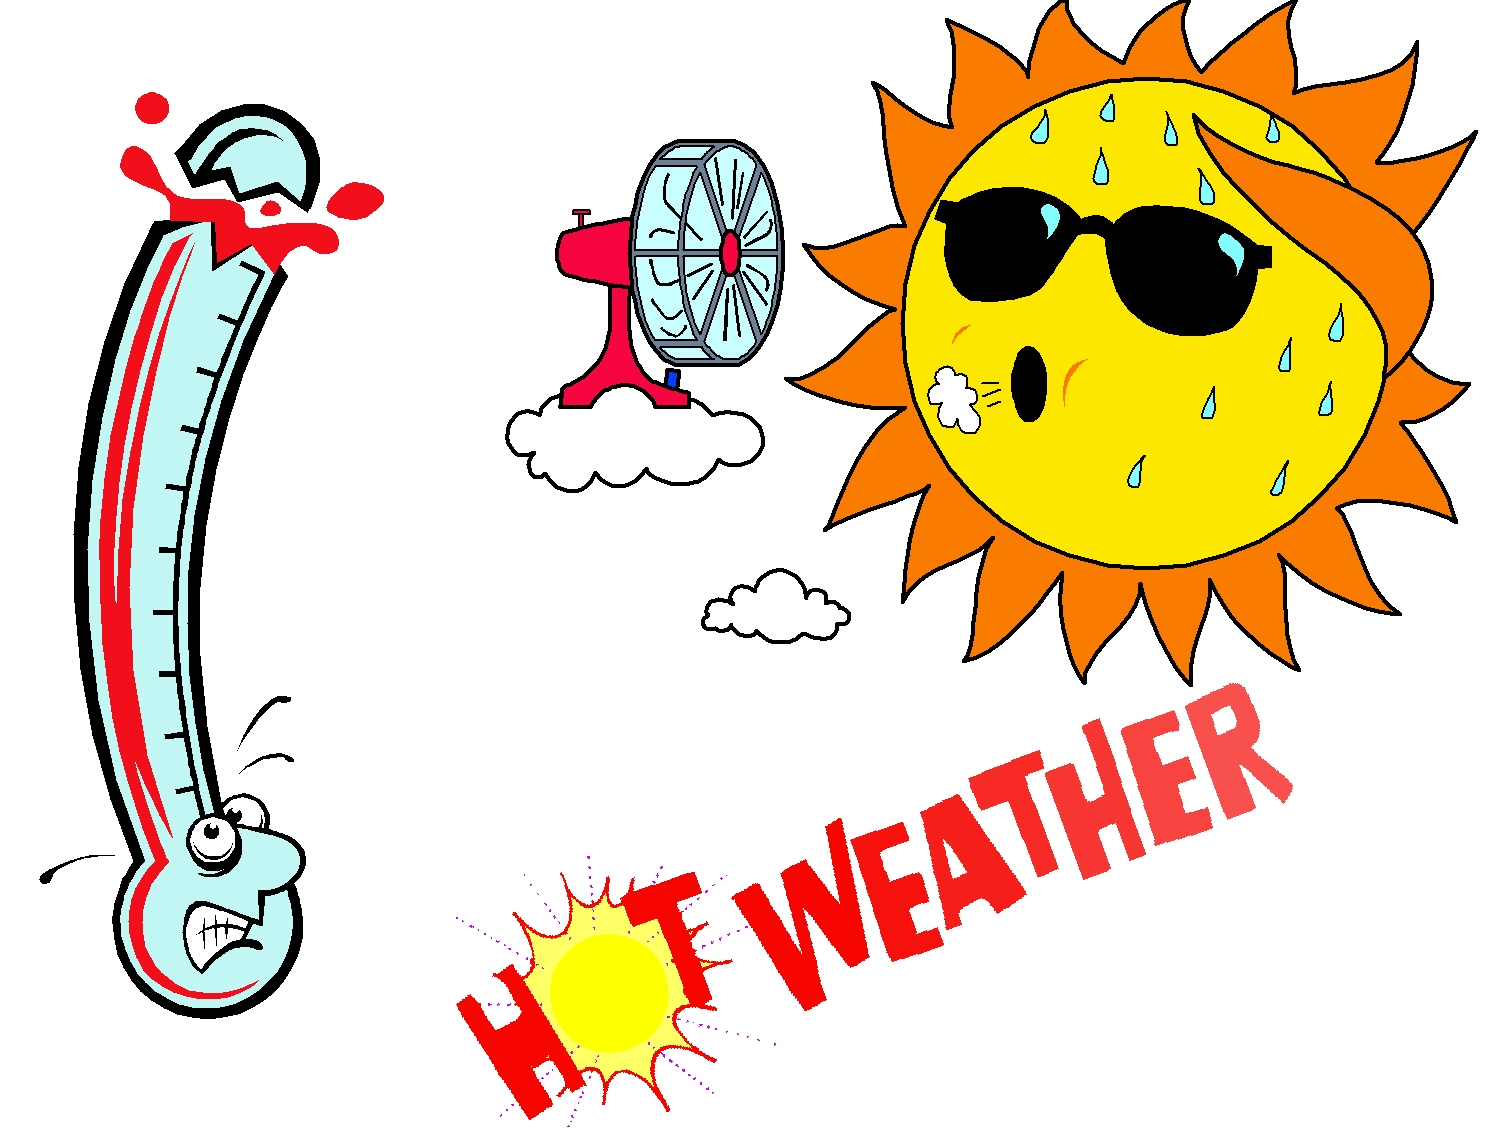 Warmth clipart temperature Cliparts Zone cliparts Warm Weather